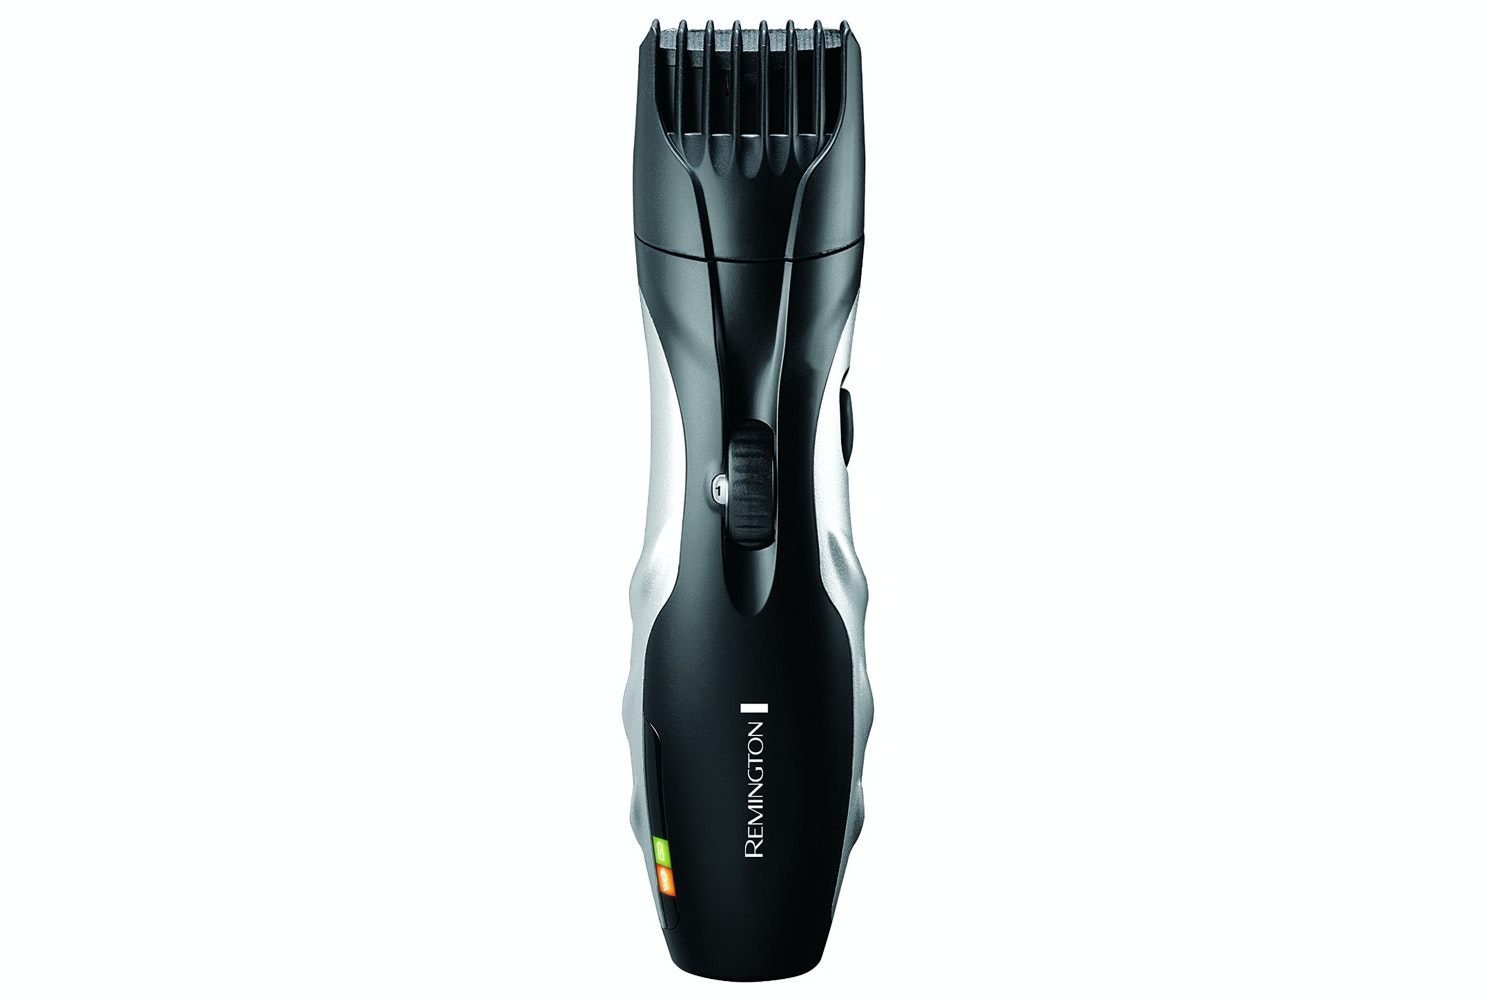 Remington 'Barba' Beard Trimmer